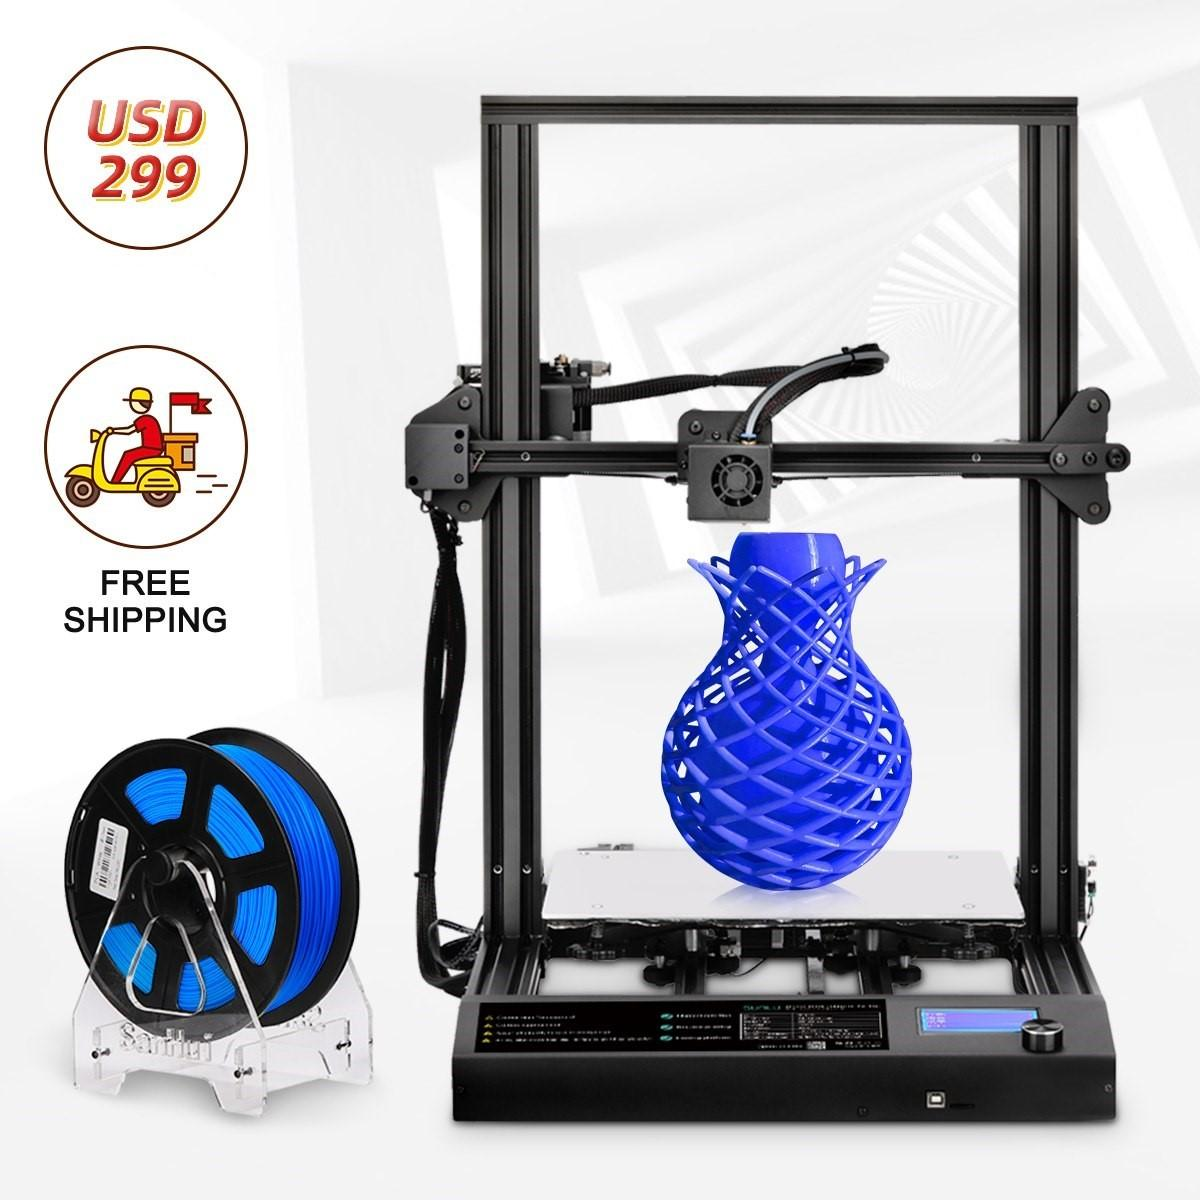 Design 3D Printer 310*310 *400mm Large Printing Size FDM and PLA/ABS/PETG Filament 1.75mm Fast Prototyping Creative Toy Gift. ECTA